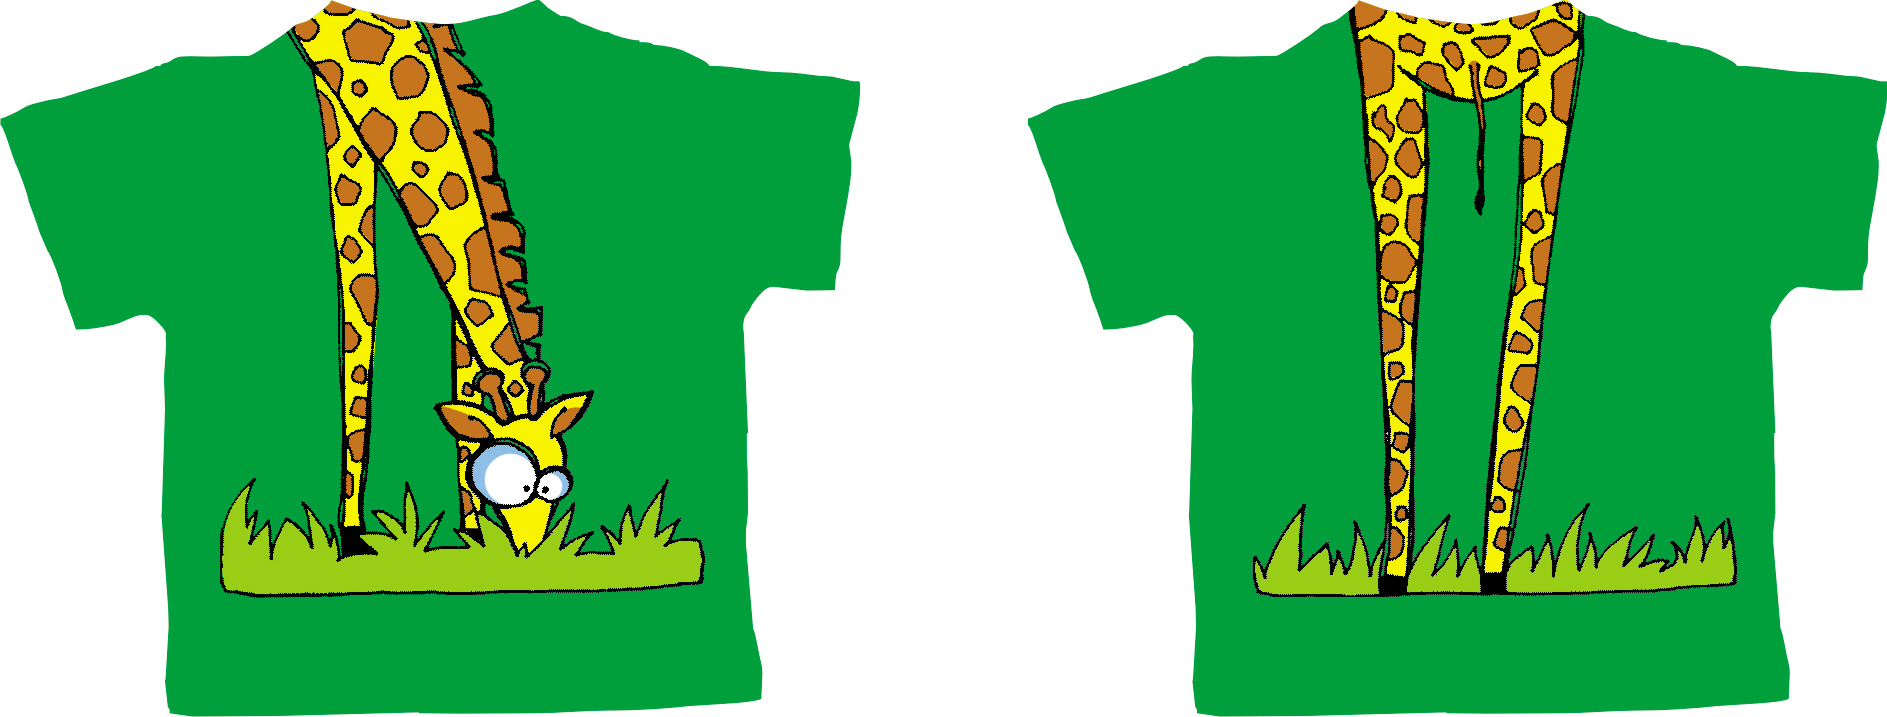 T shirt designs for kids by sayali bhagali at Coroflot.com